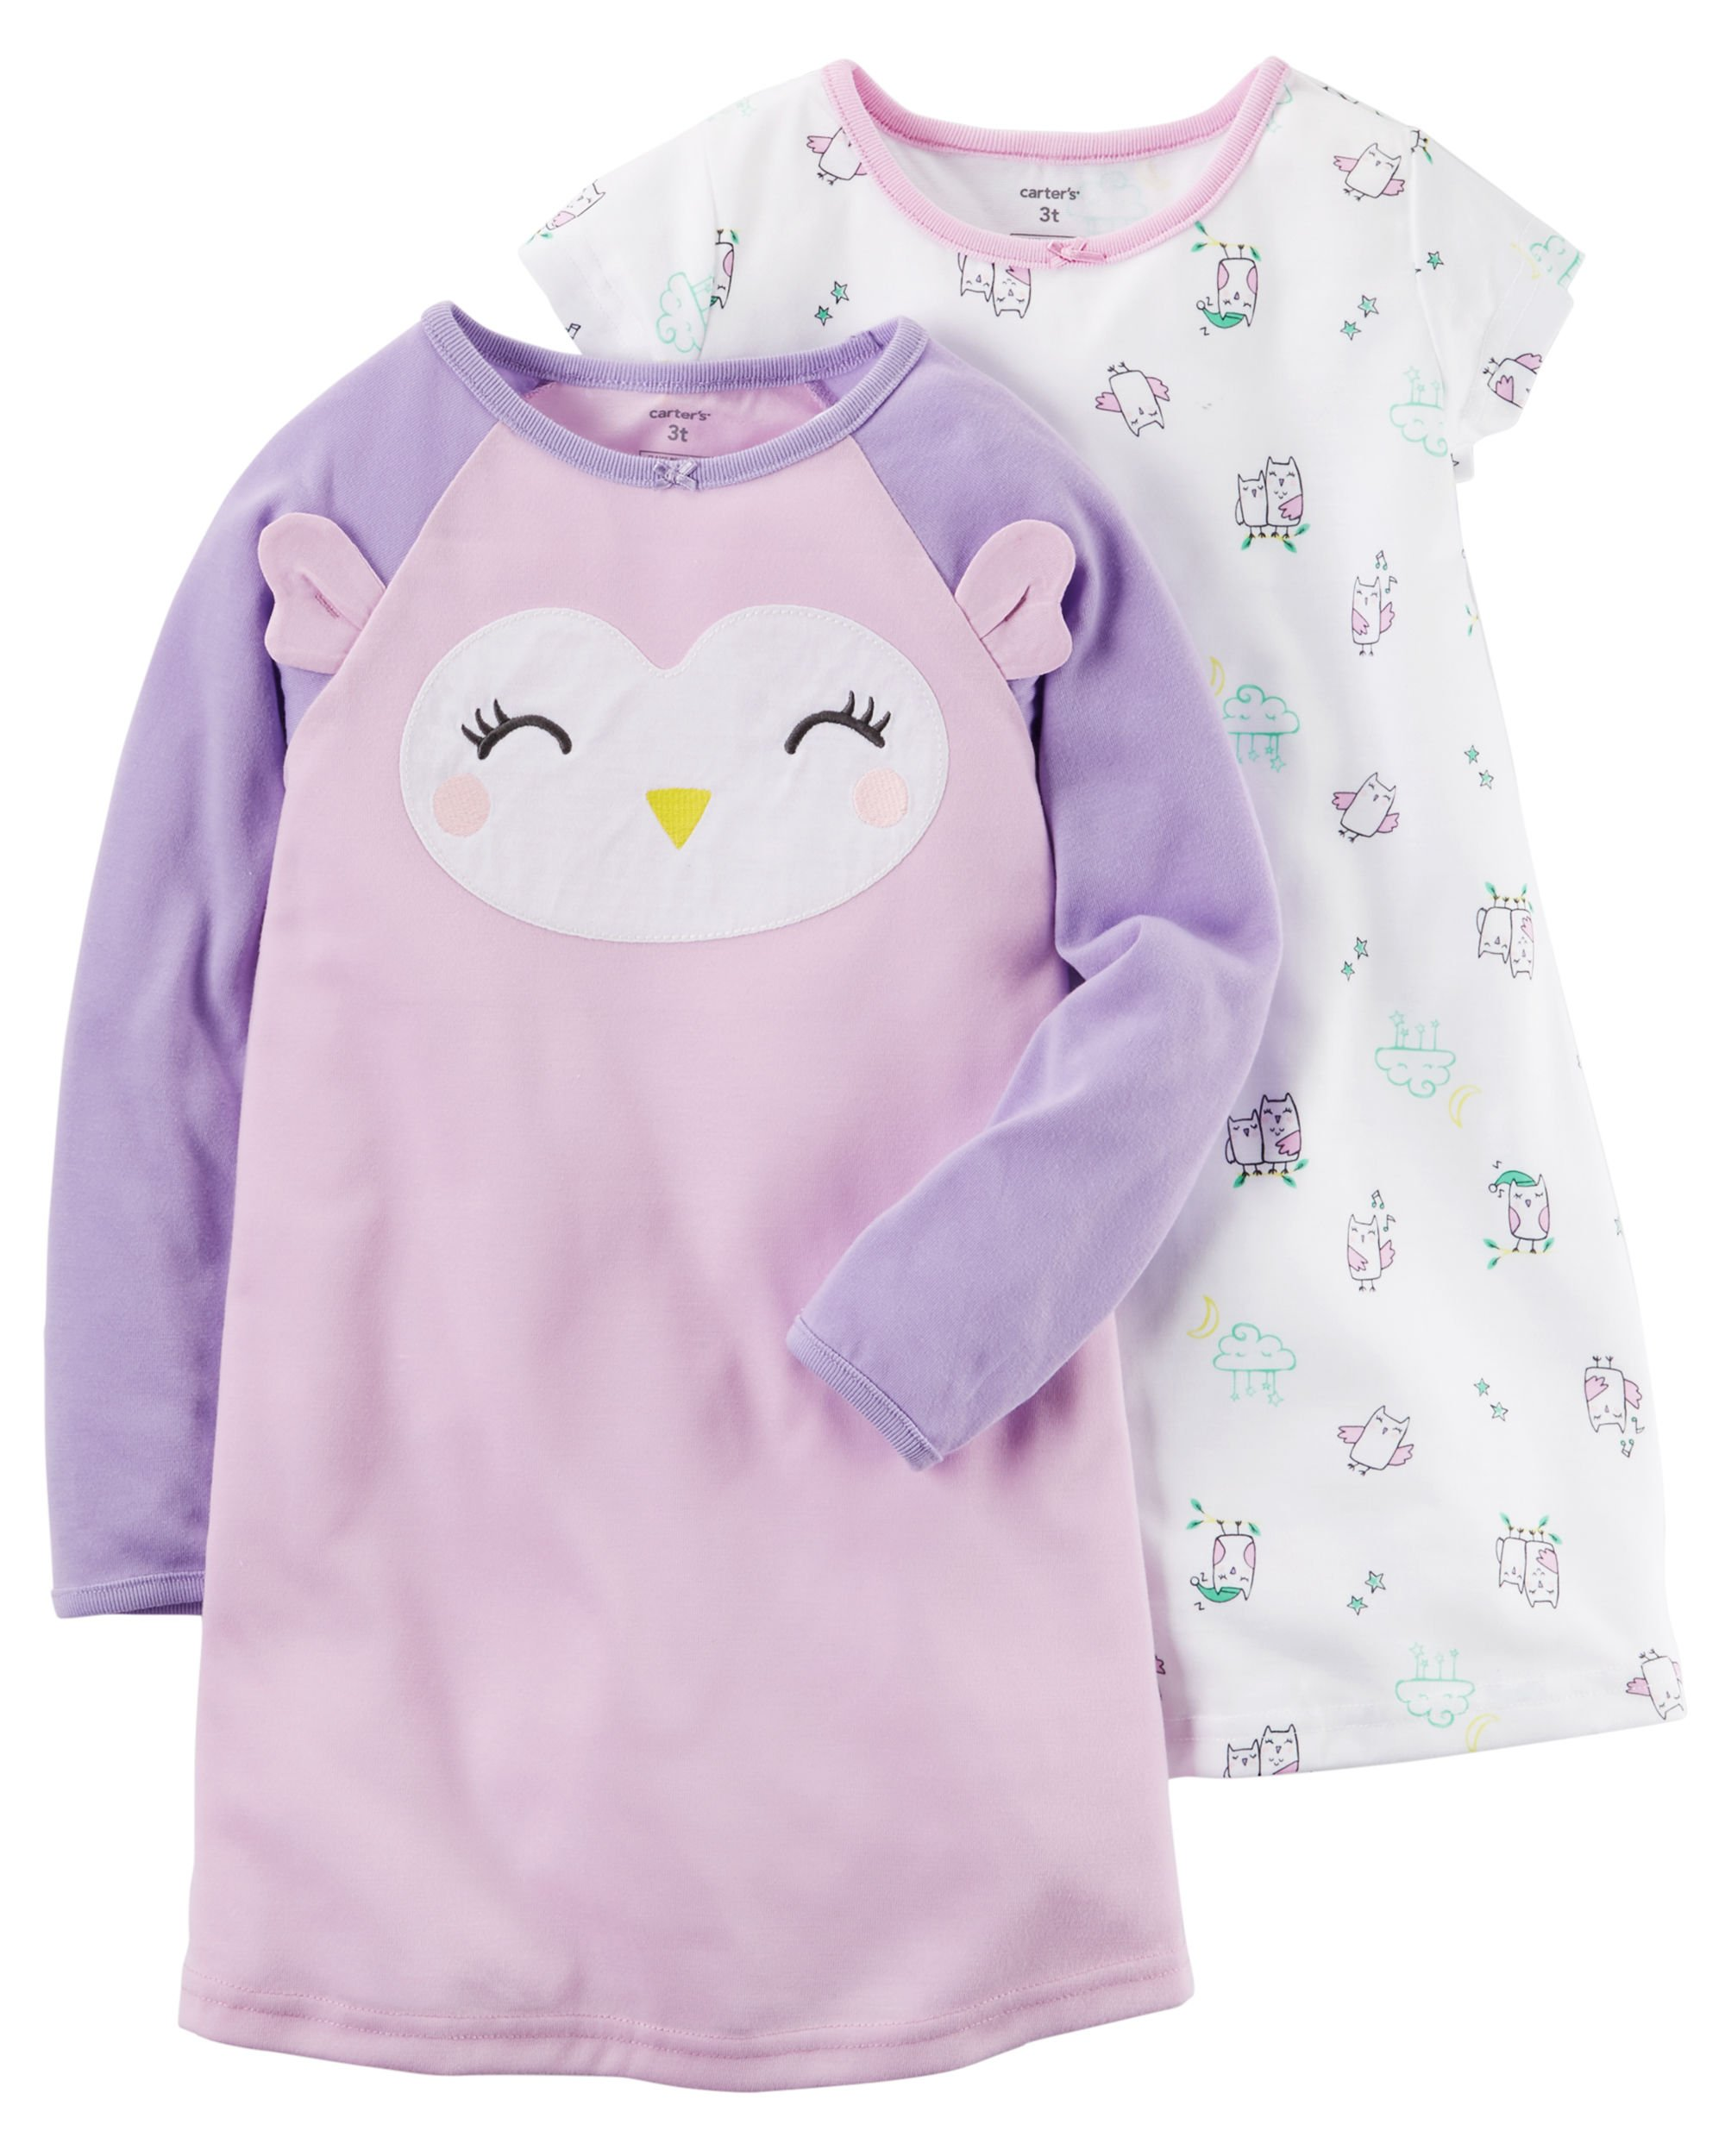 Carter's Purple Girl's 2-Pack Nightgowns, Owl Print (2-3) by Carter's (Image #1)